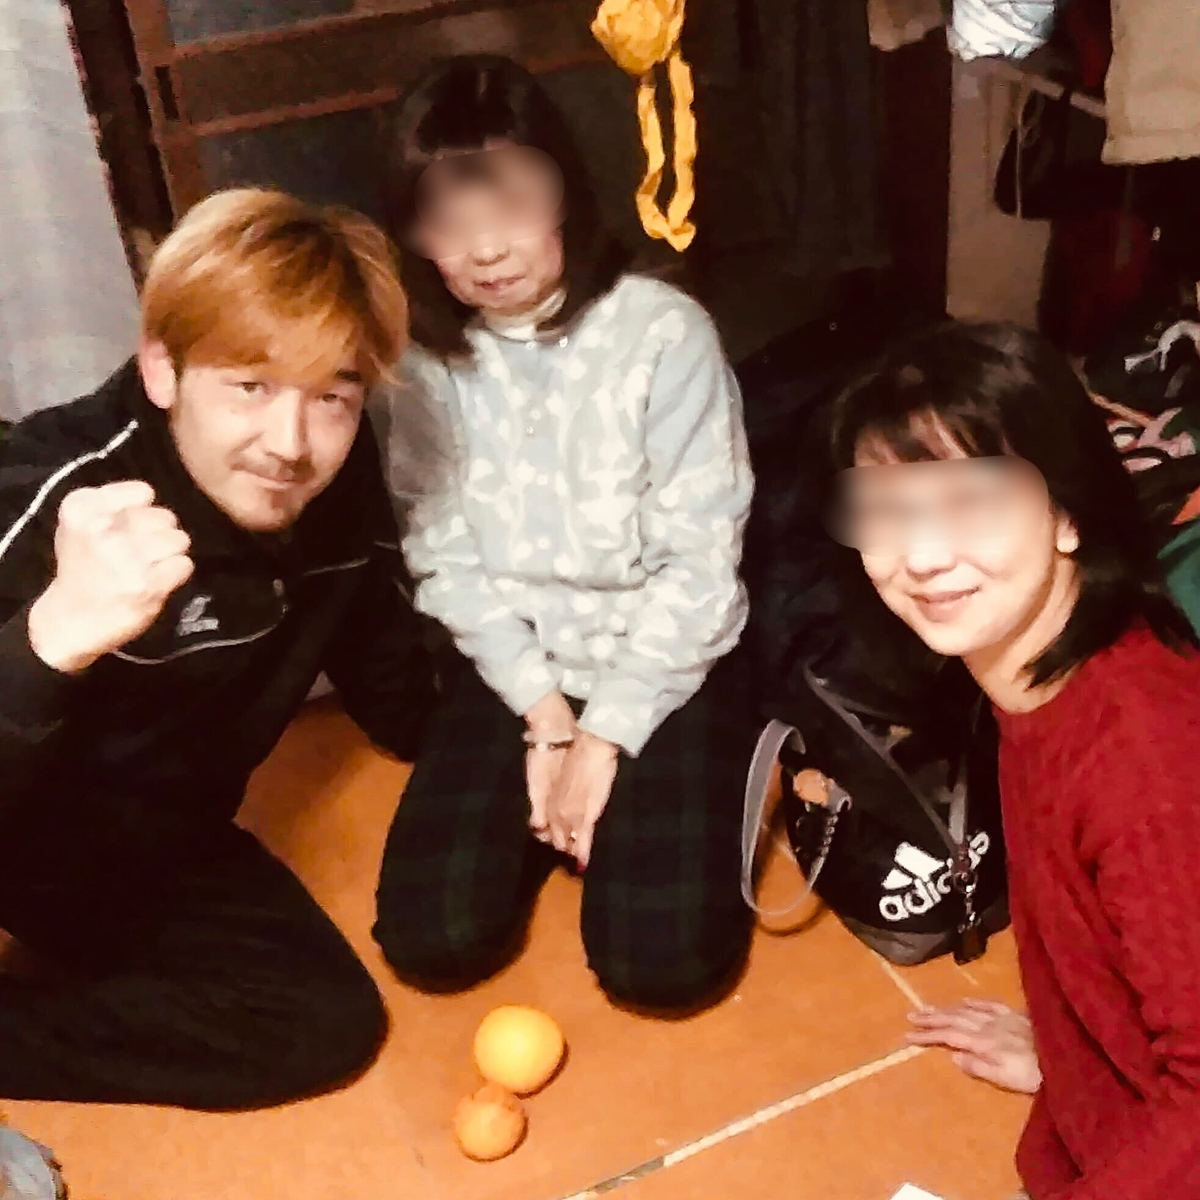 f:id:single-father-ajitama:20190414112452j:plain